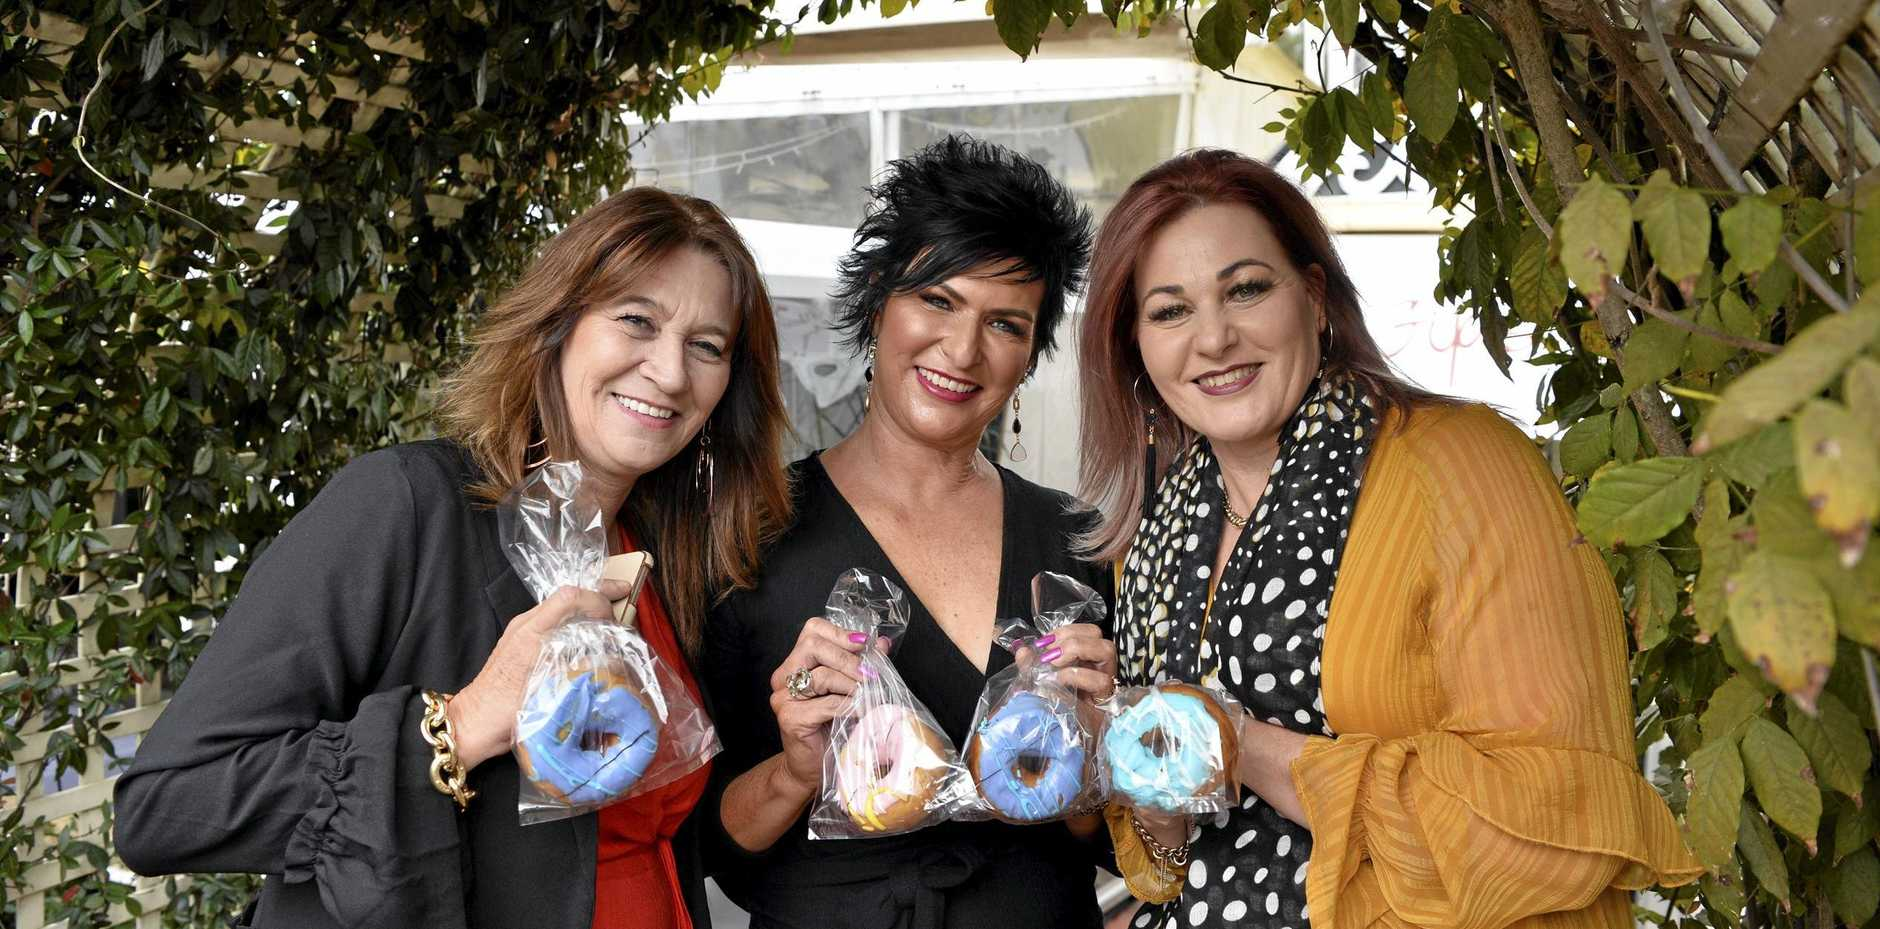 Enjoying a fun afternoon for charity are (from left) Sharon Pengelly, Kerri Coghlan and Natasha Arnold at the Toowoomba Hospital Foundations Hogans Family Jewellers Ladies Diamond Luncheon at Gip's Restaurant, Friday, June 7, 2019.